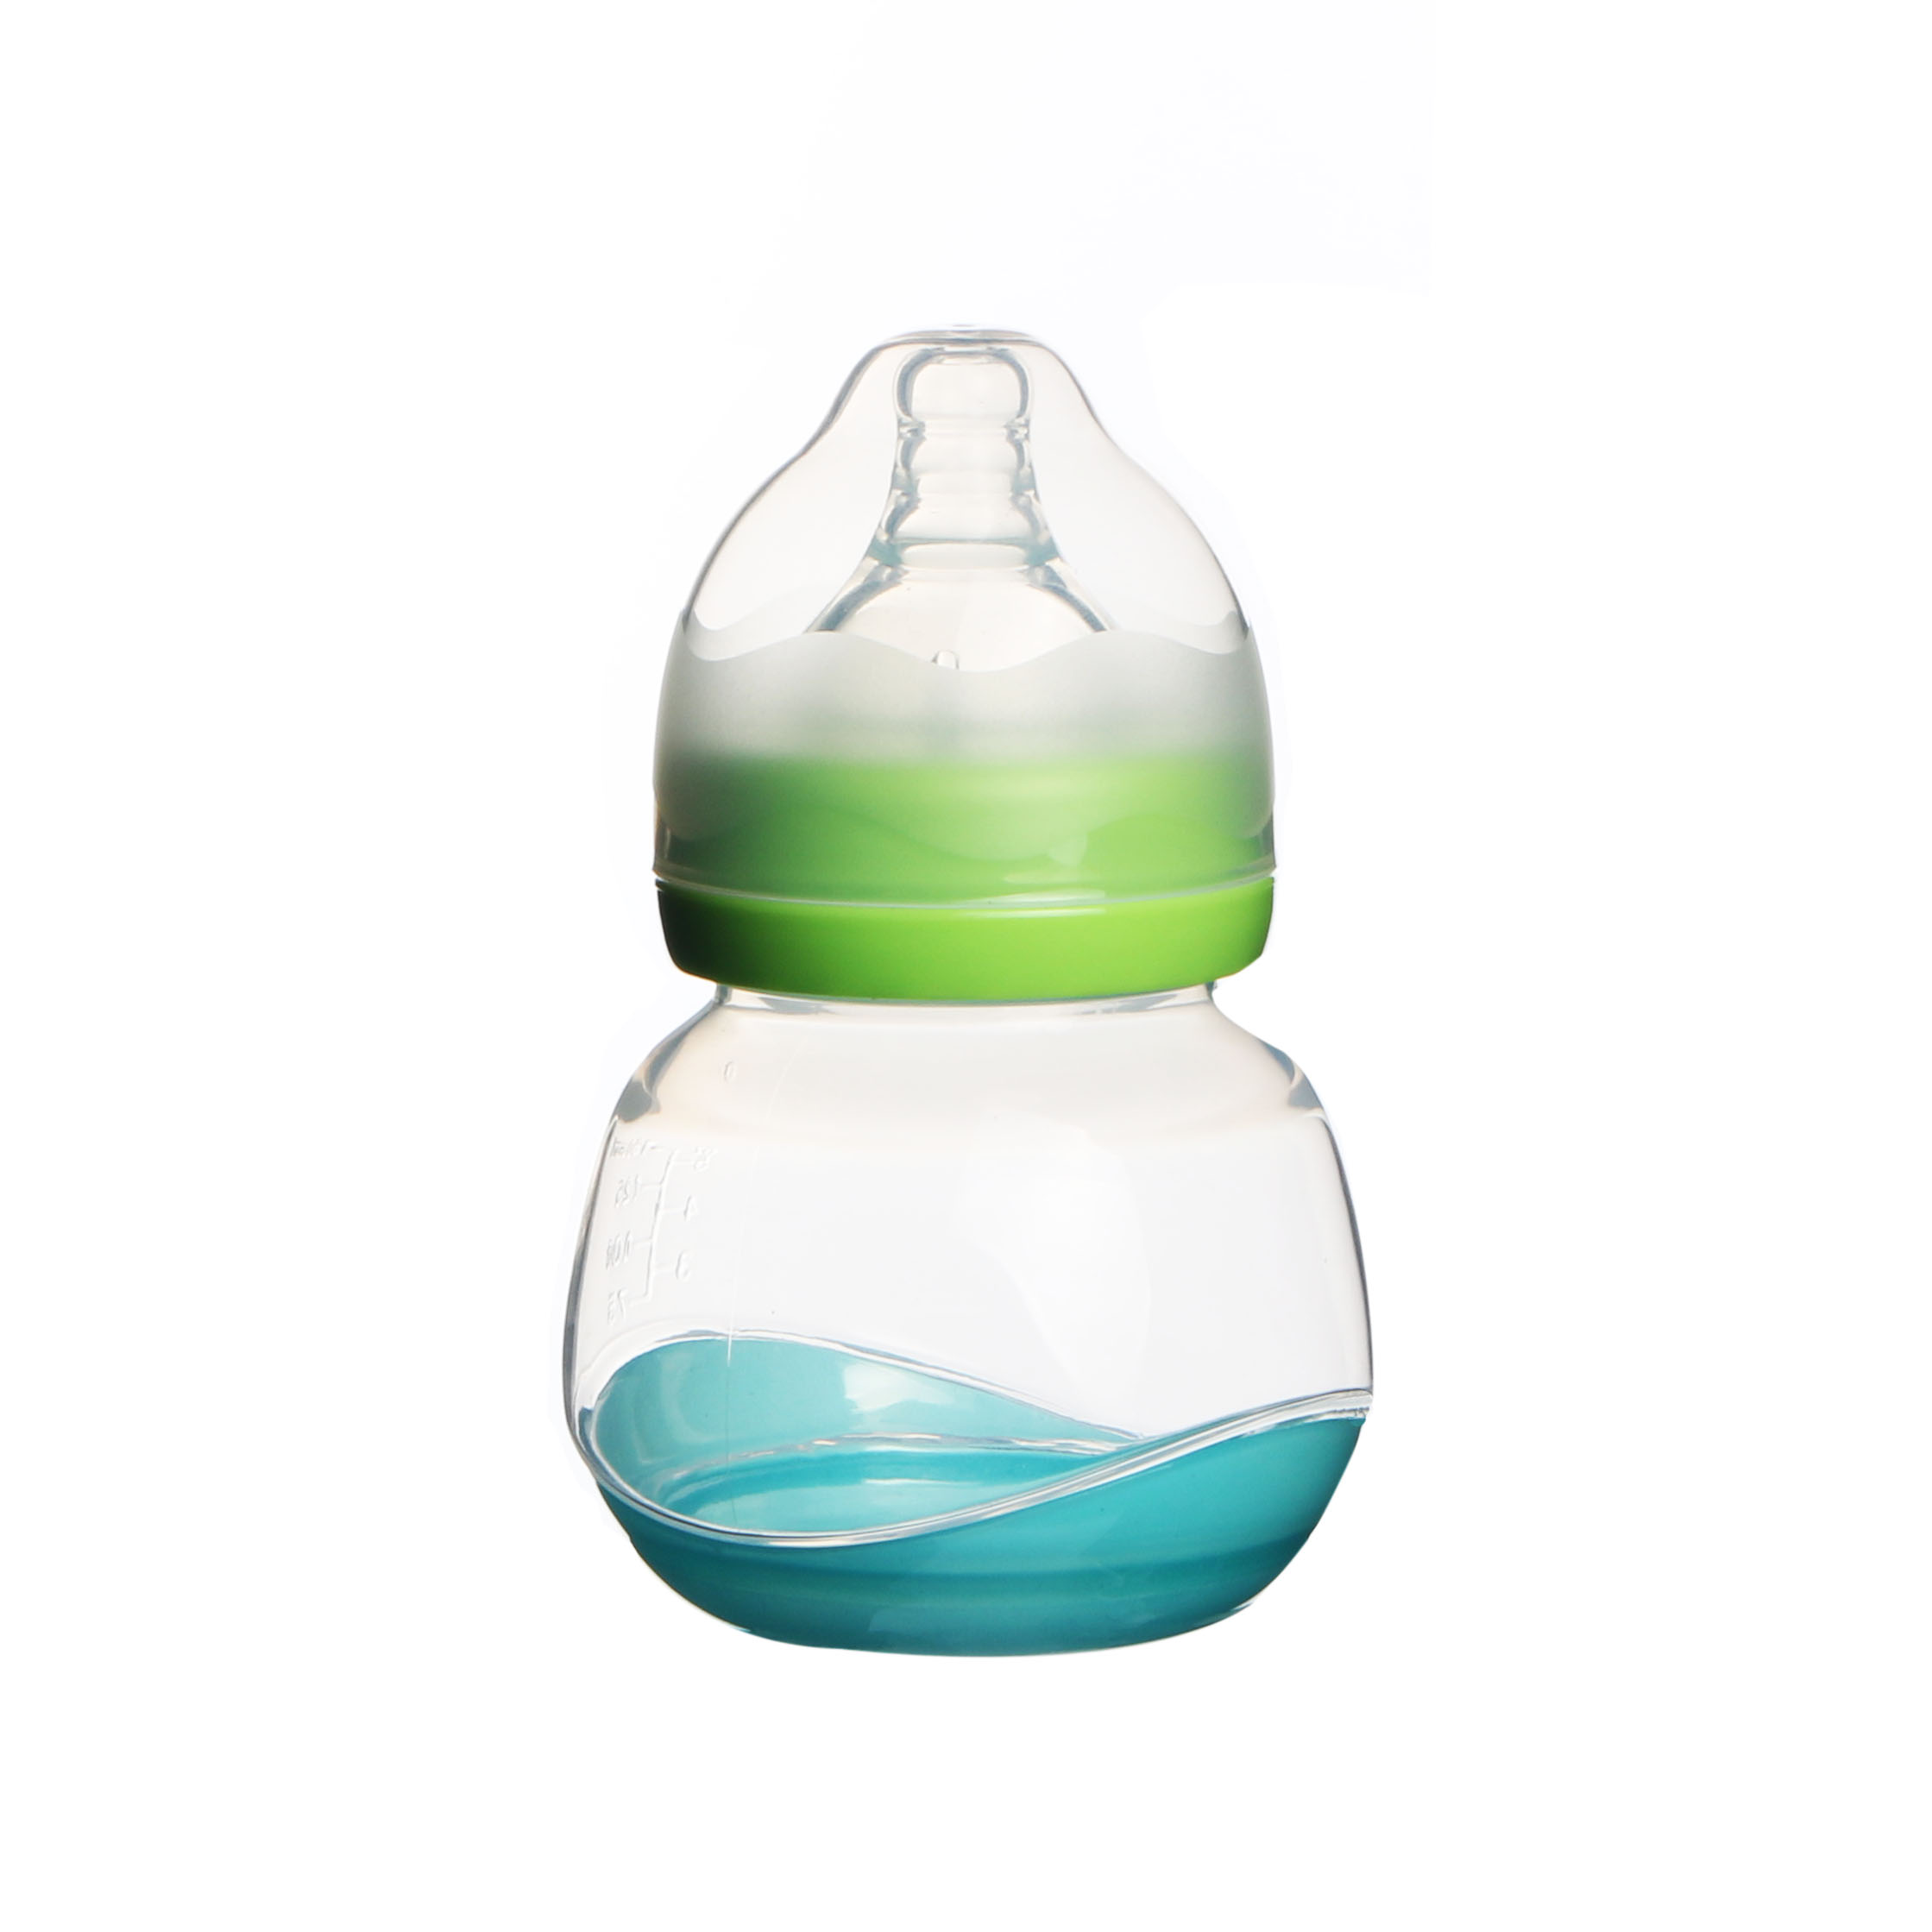 2017 best hot selling green 330ml colourful baby bottles for newborns